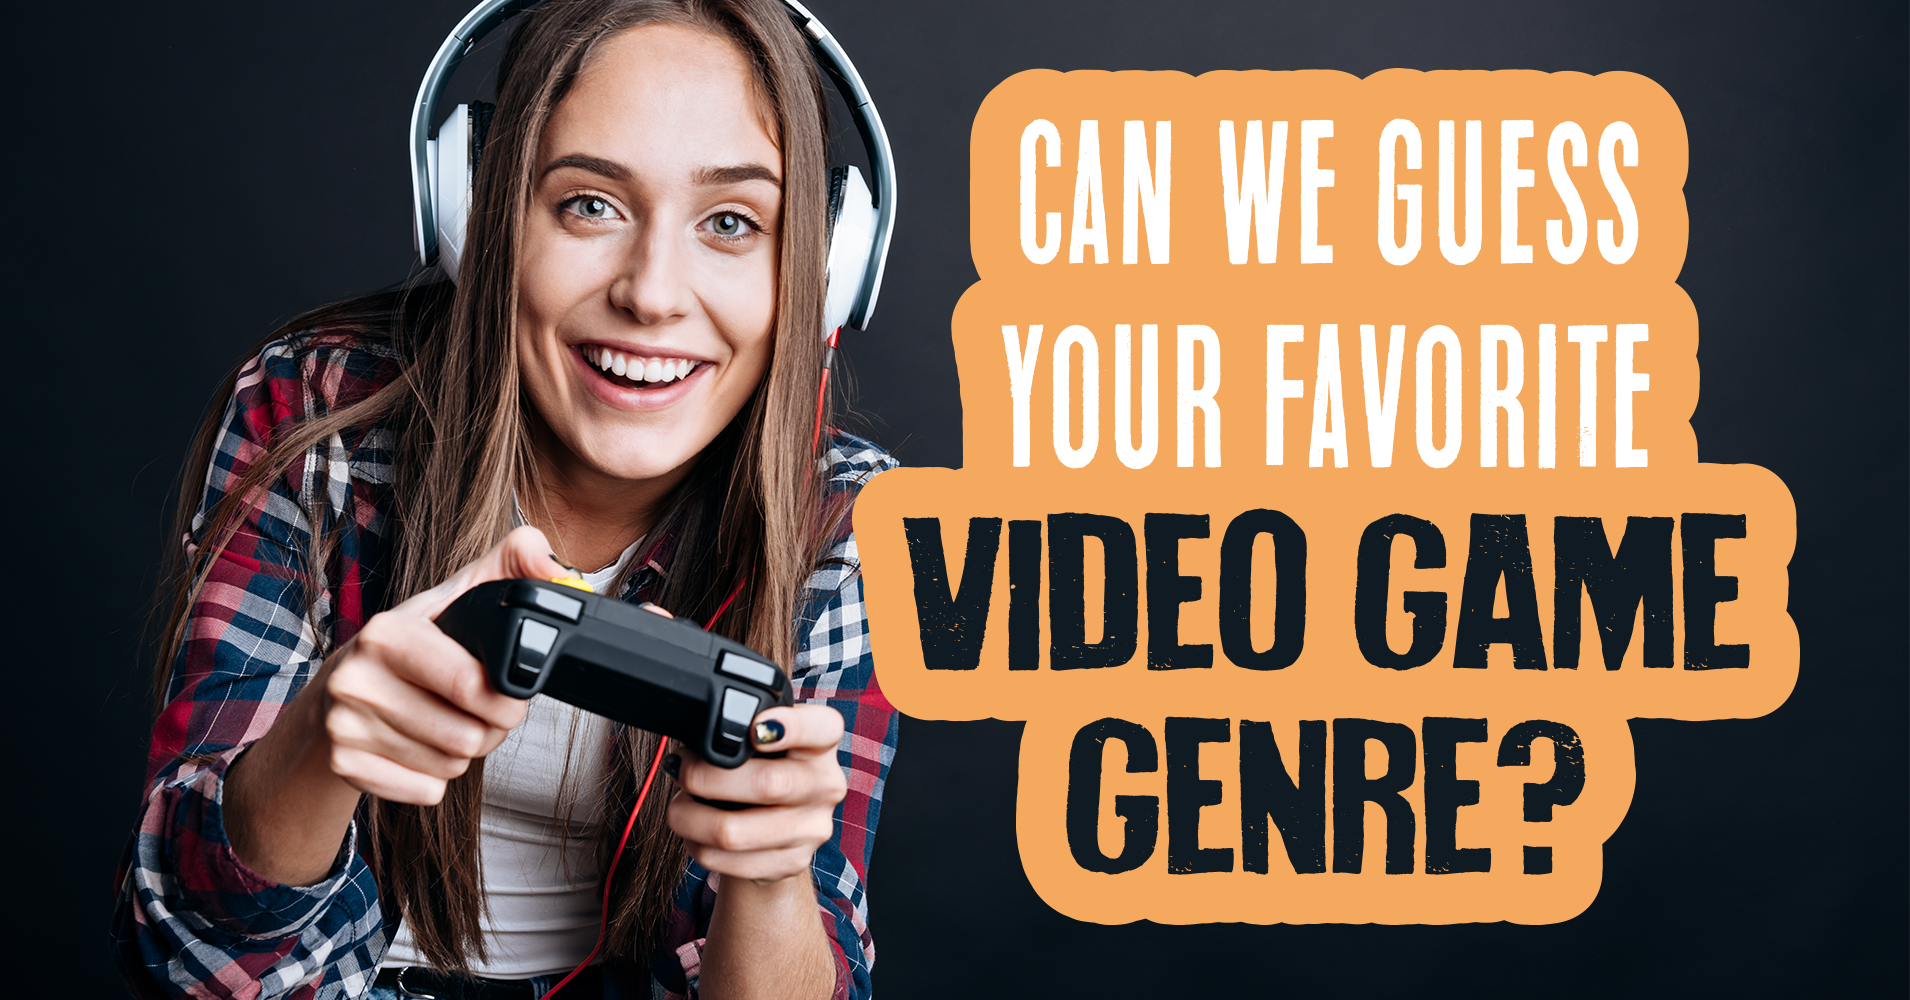 Computer and video game genres